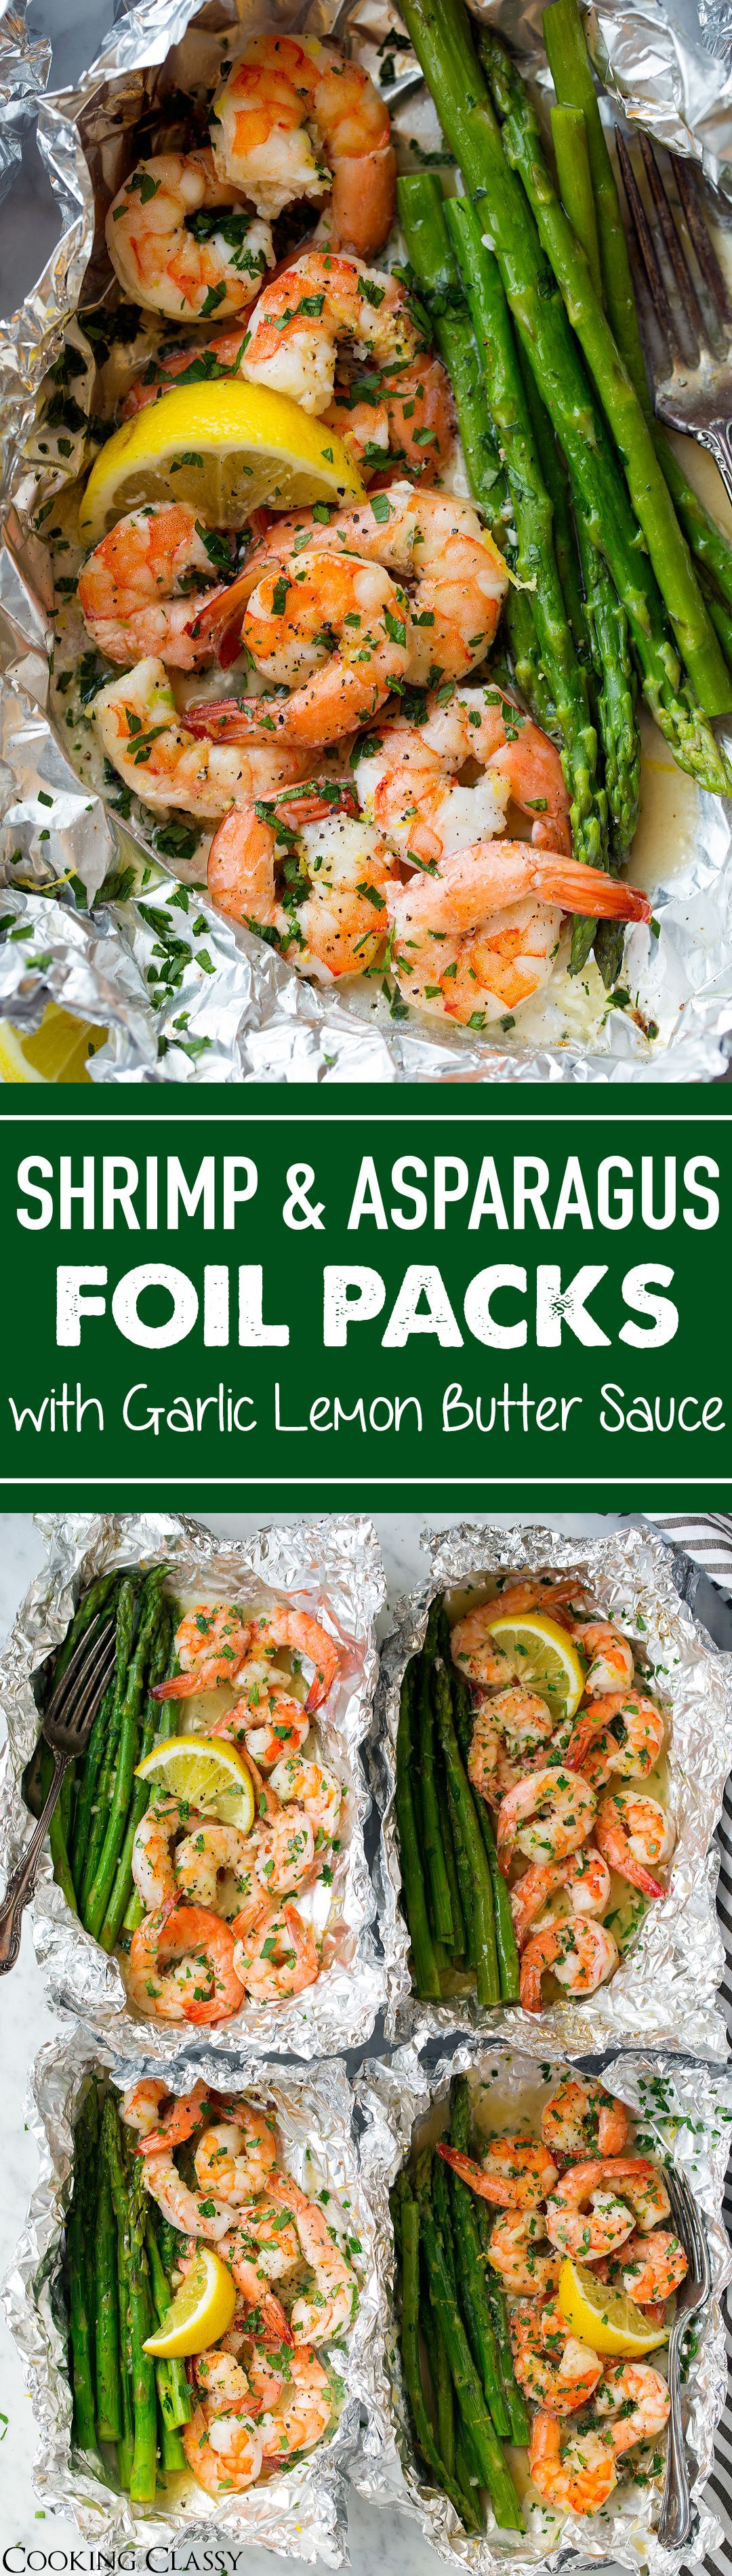 Shrimp and Asparagus Foil Packs with Garlic Lemon Butter Sauce – Cooking Classy